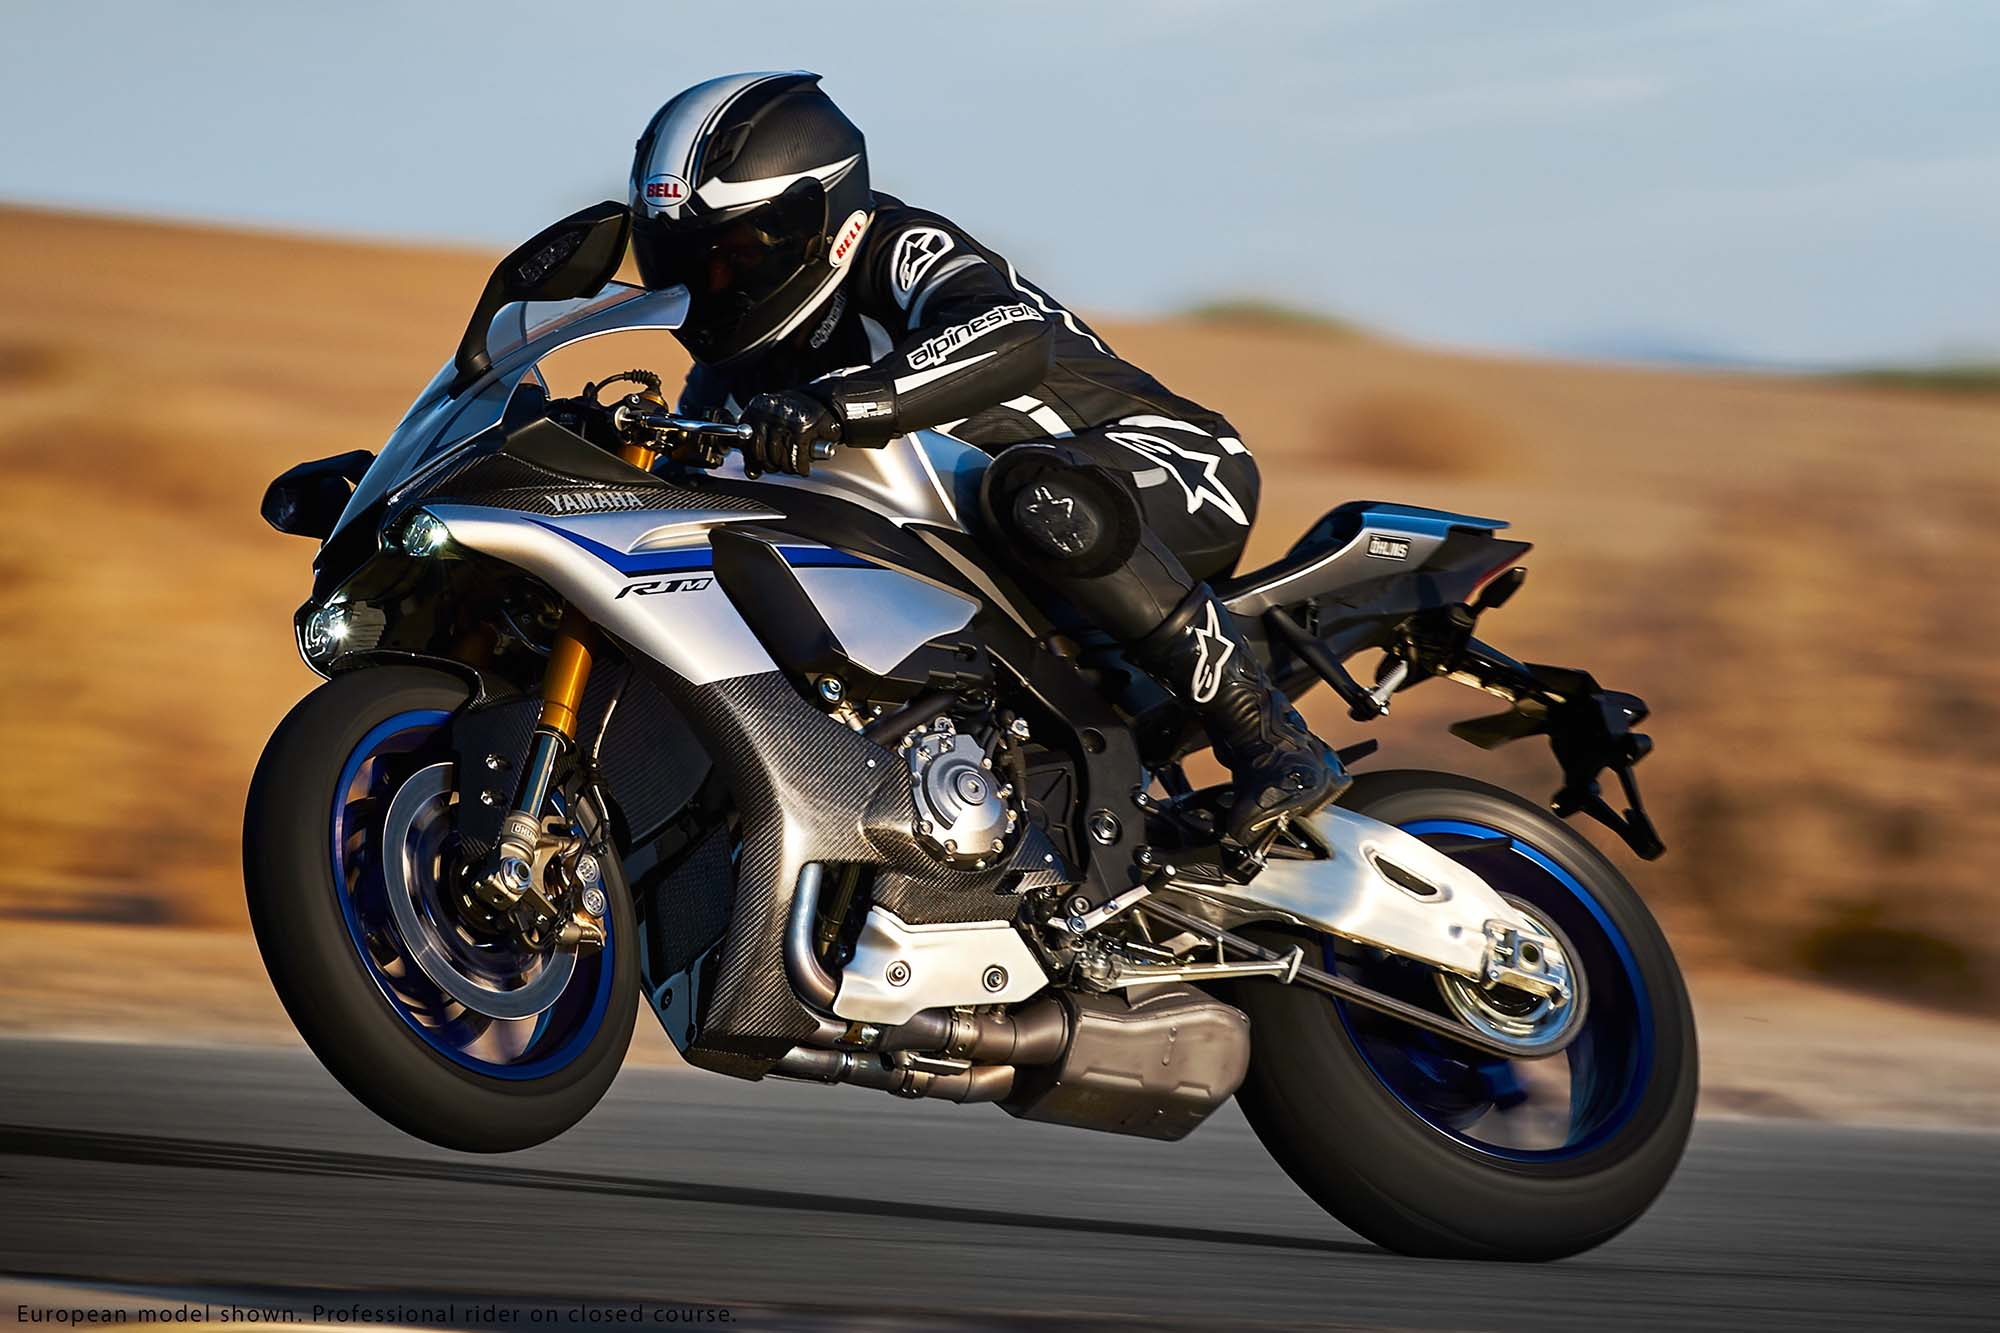 Yamaha YZF-R1M Gets Homologated by the FIM - Asphalt & Rubber